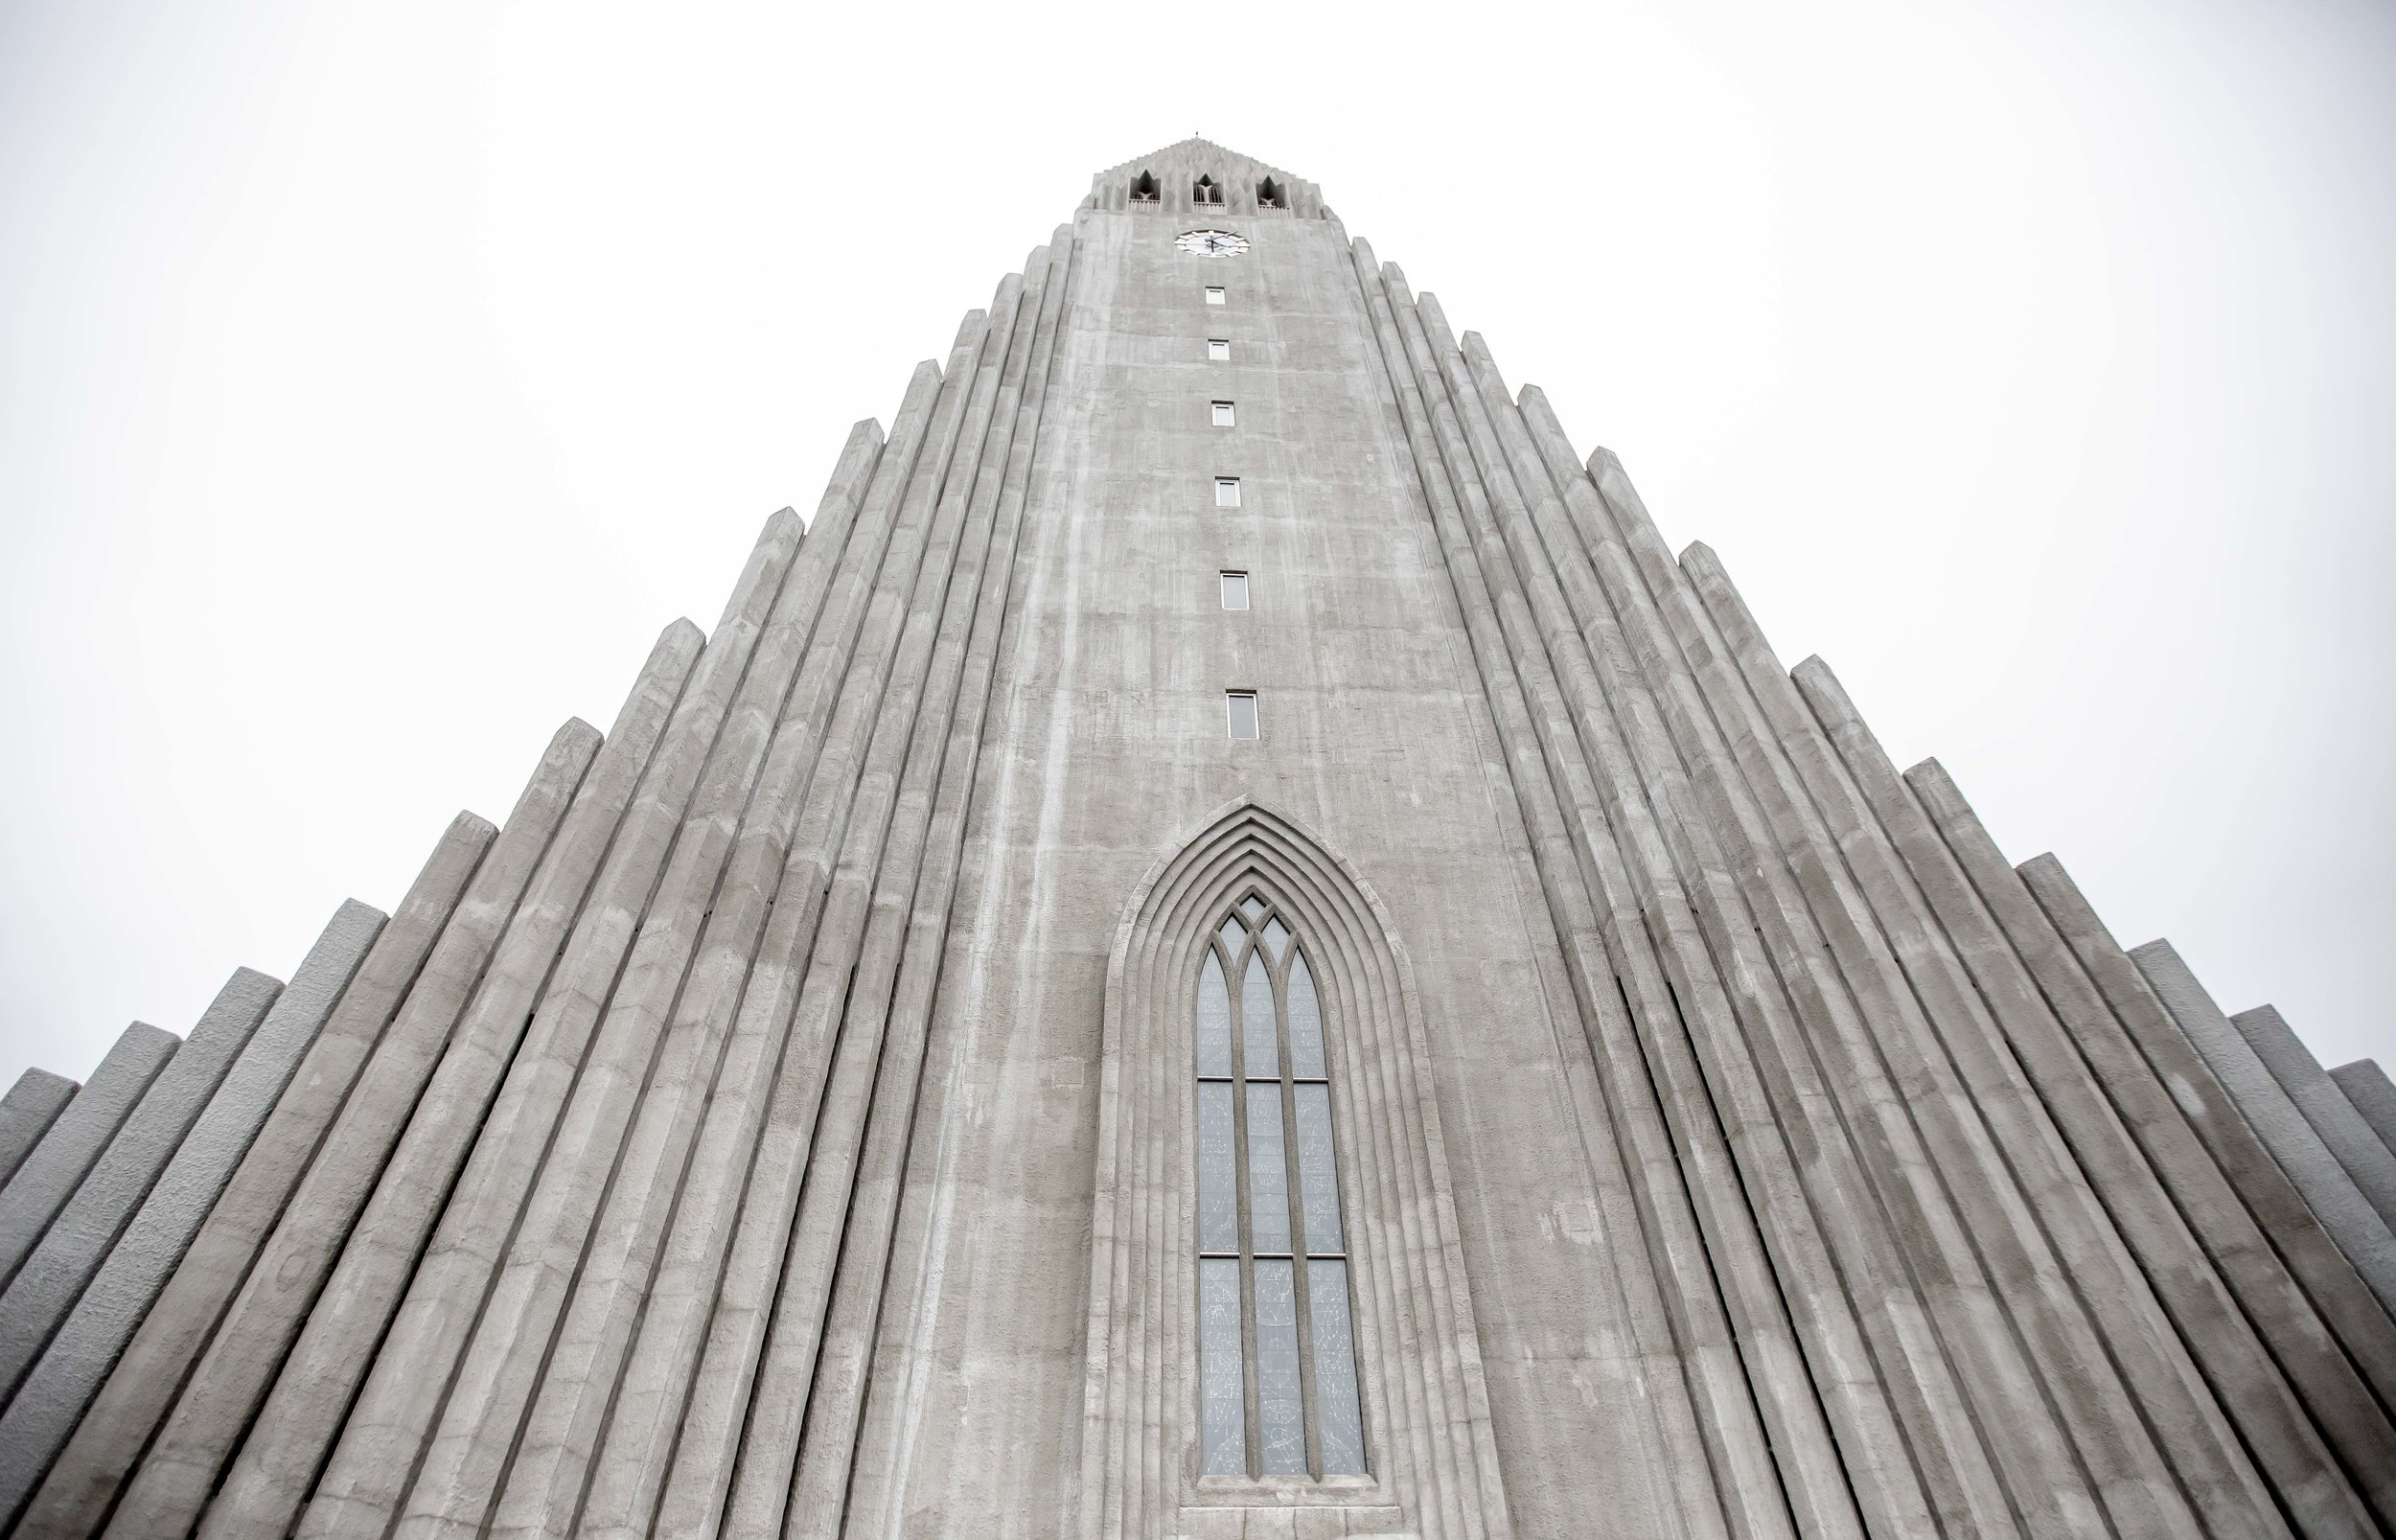 Hallgrímskirkja - Can you see the resemblance?